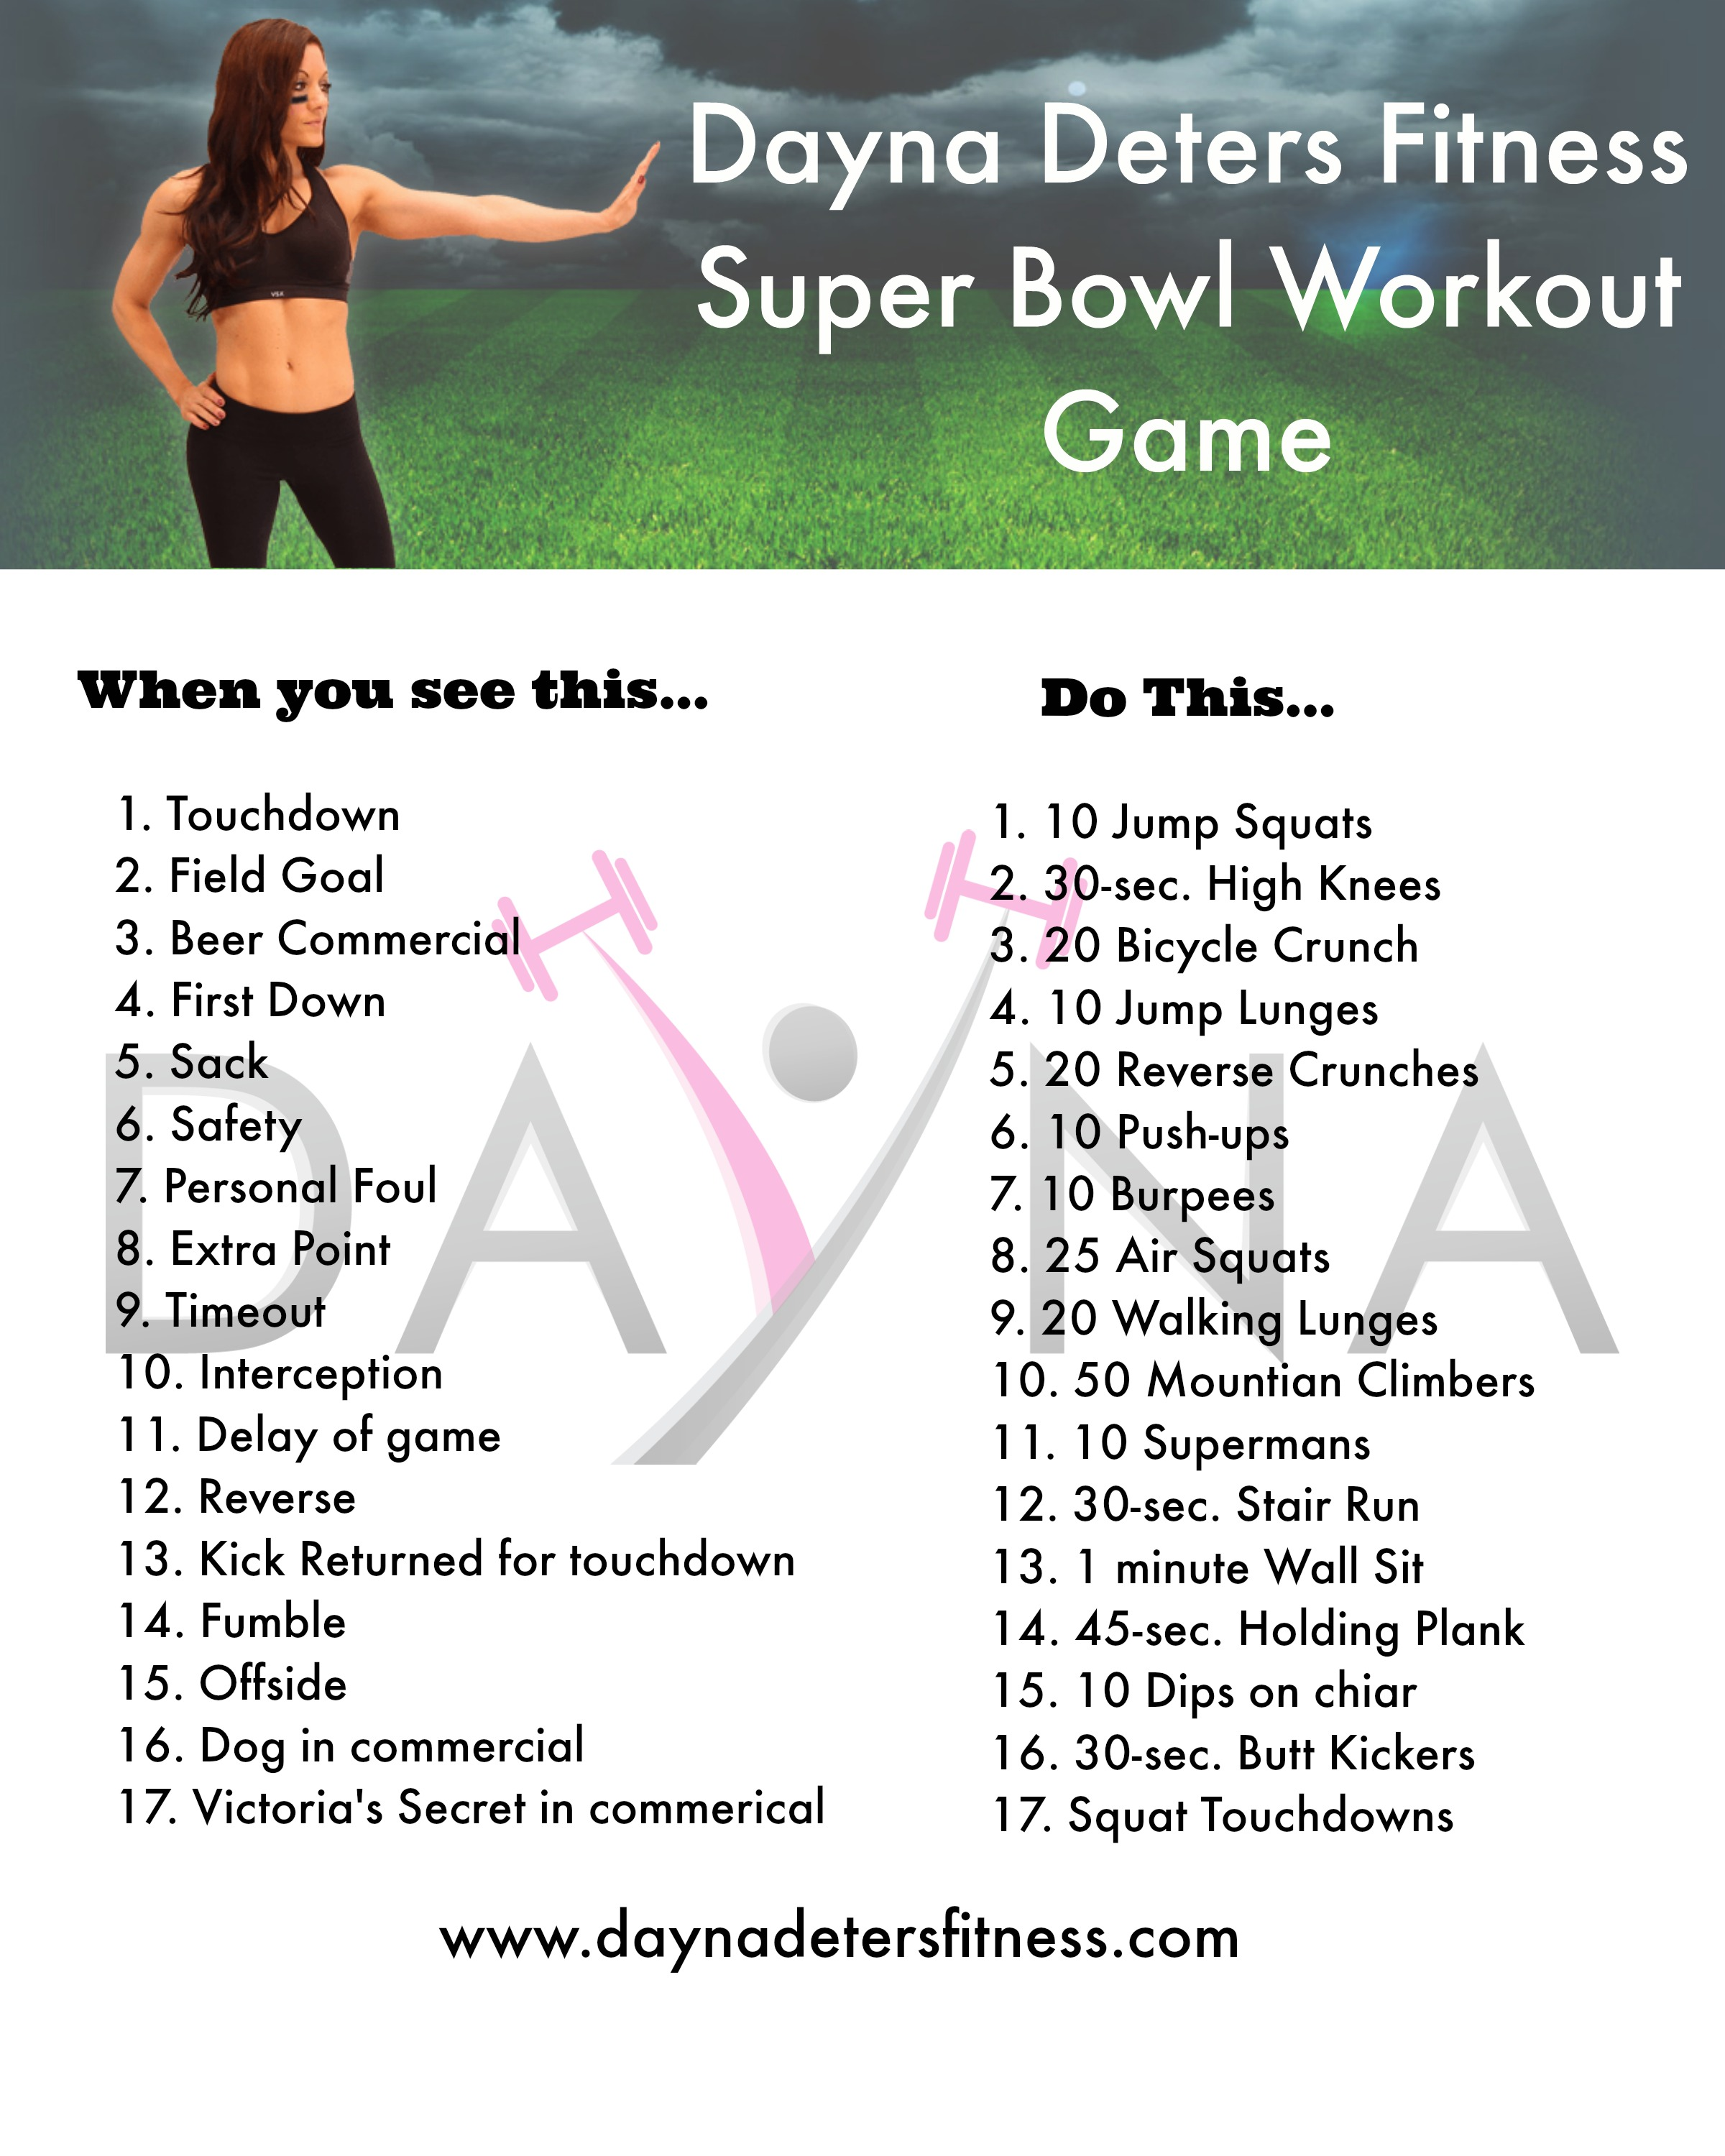 Workout Games: Dayna Deters Fitness Super Bowl Workout Game